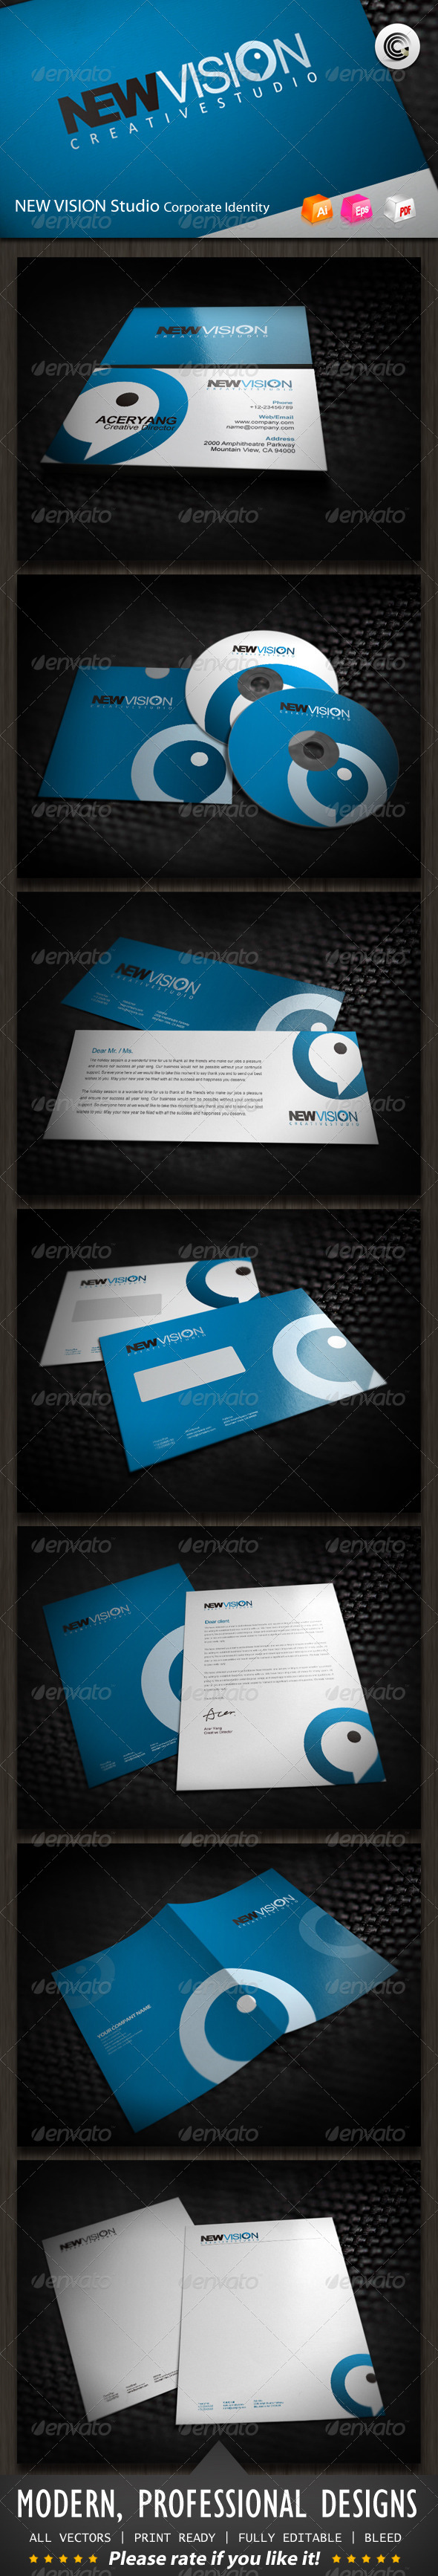 GraphicRiver New Vision Studio Corporate Identity 584853